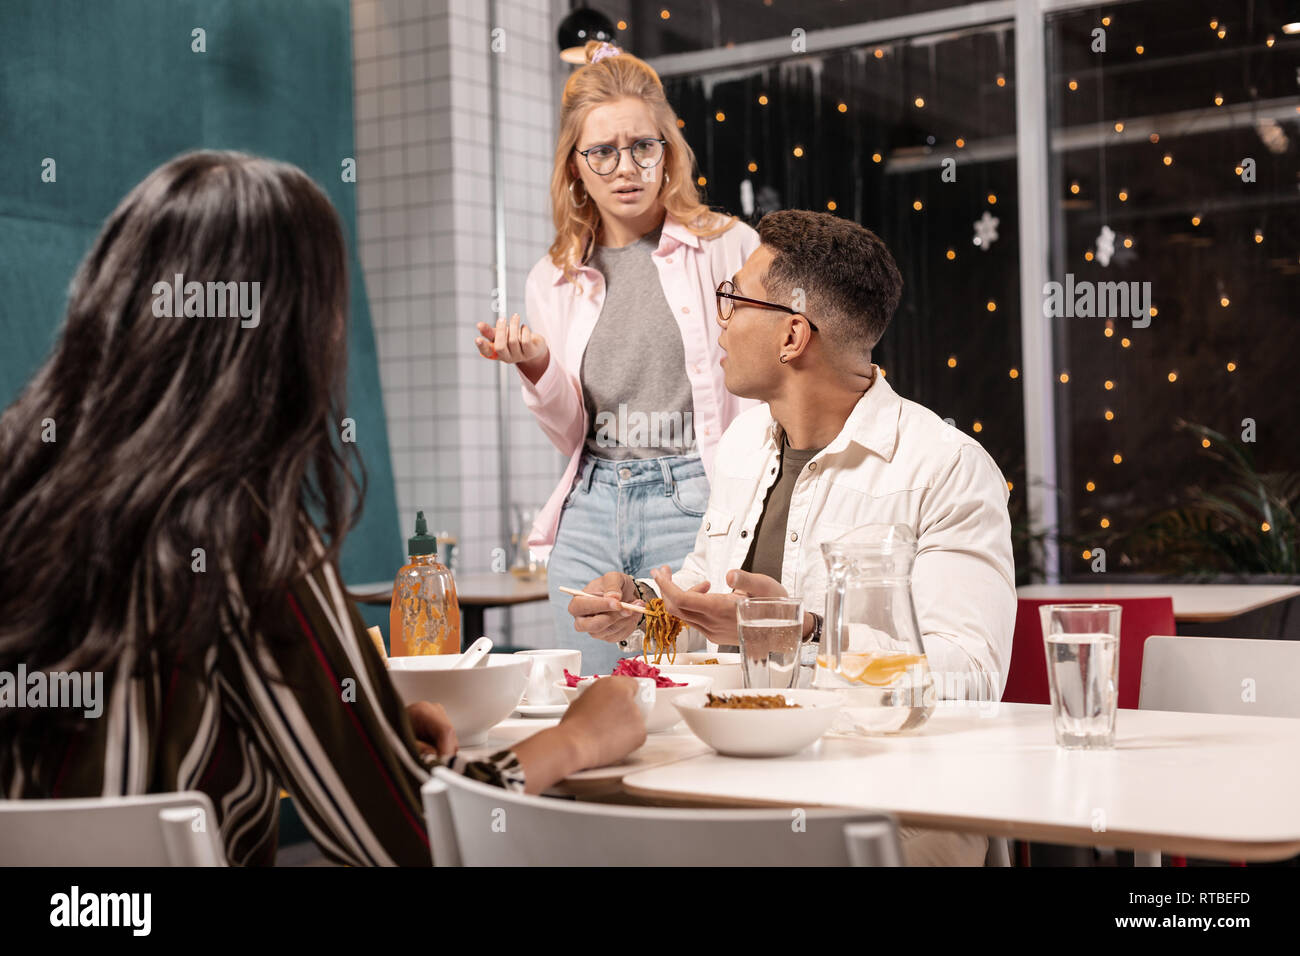 Young Caucasian woman arguing with her boyfriend while he sitting with another girl. - Stock Image